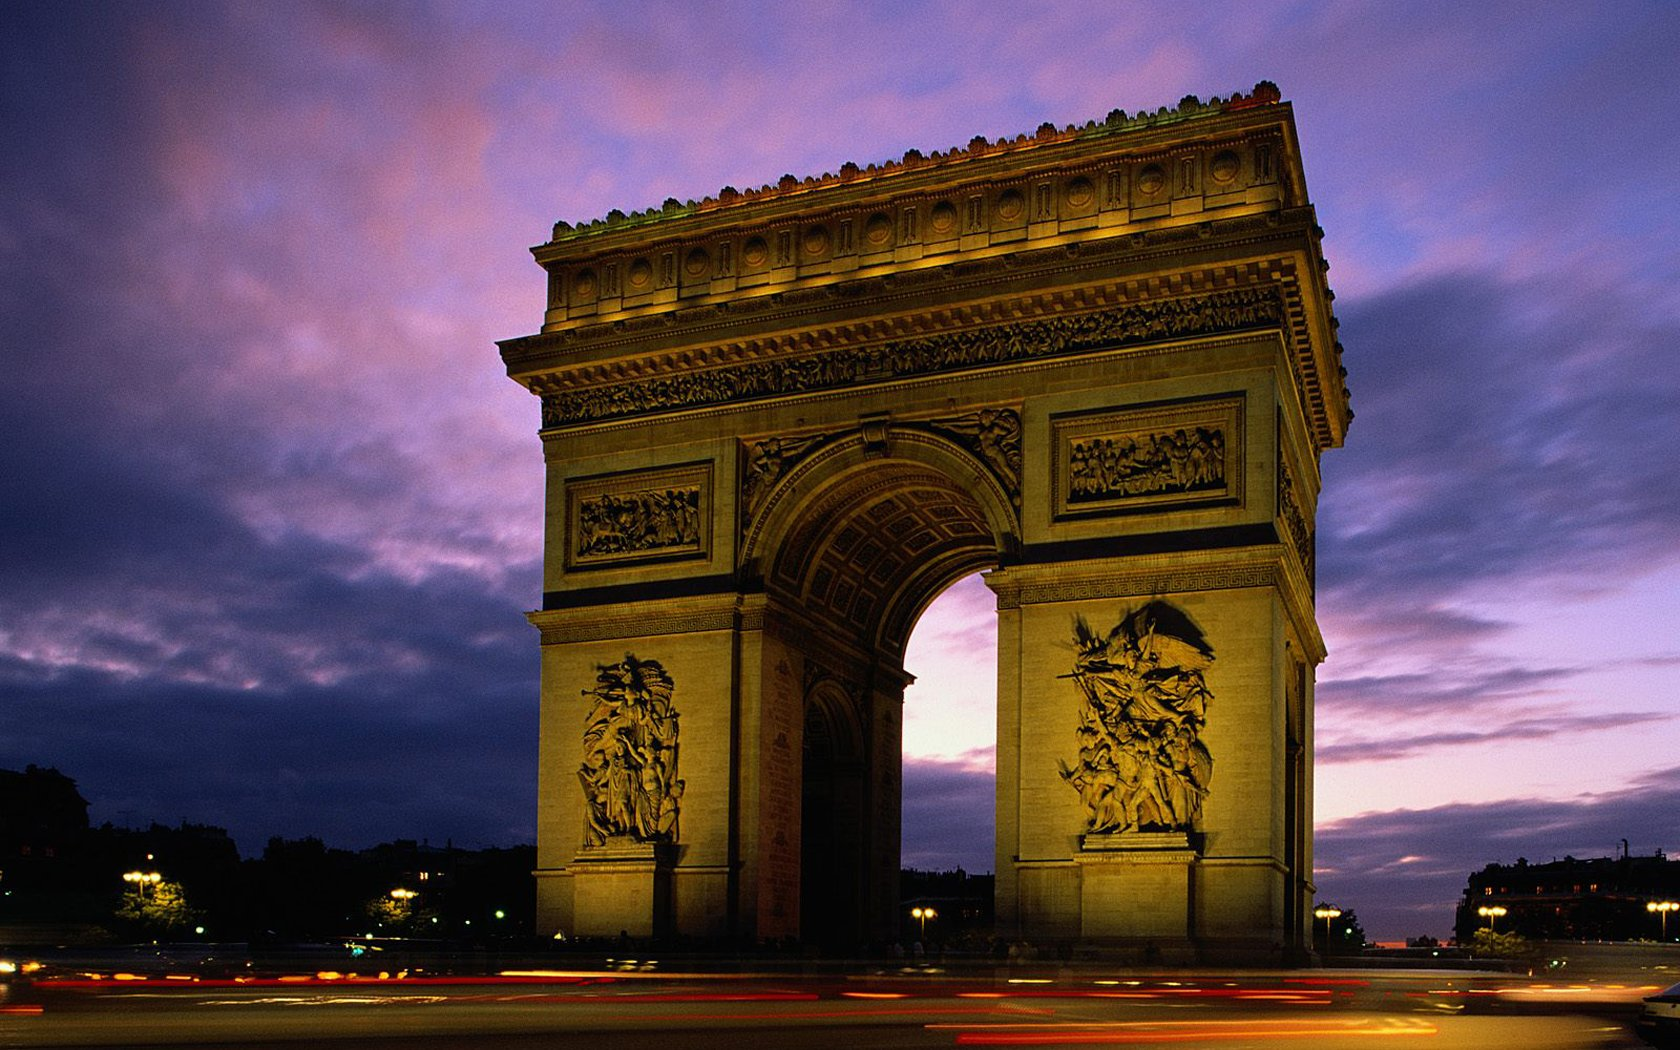 France Arc de Triomphe 346.84 Kb